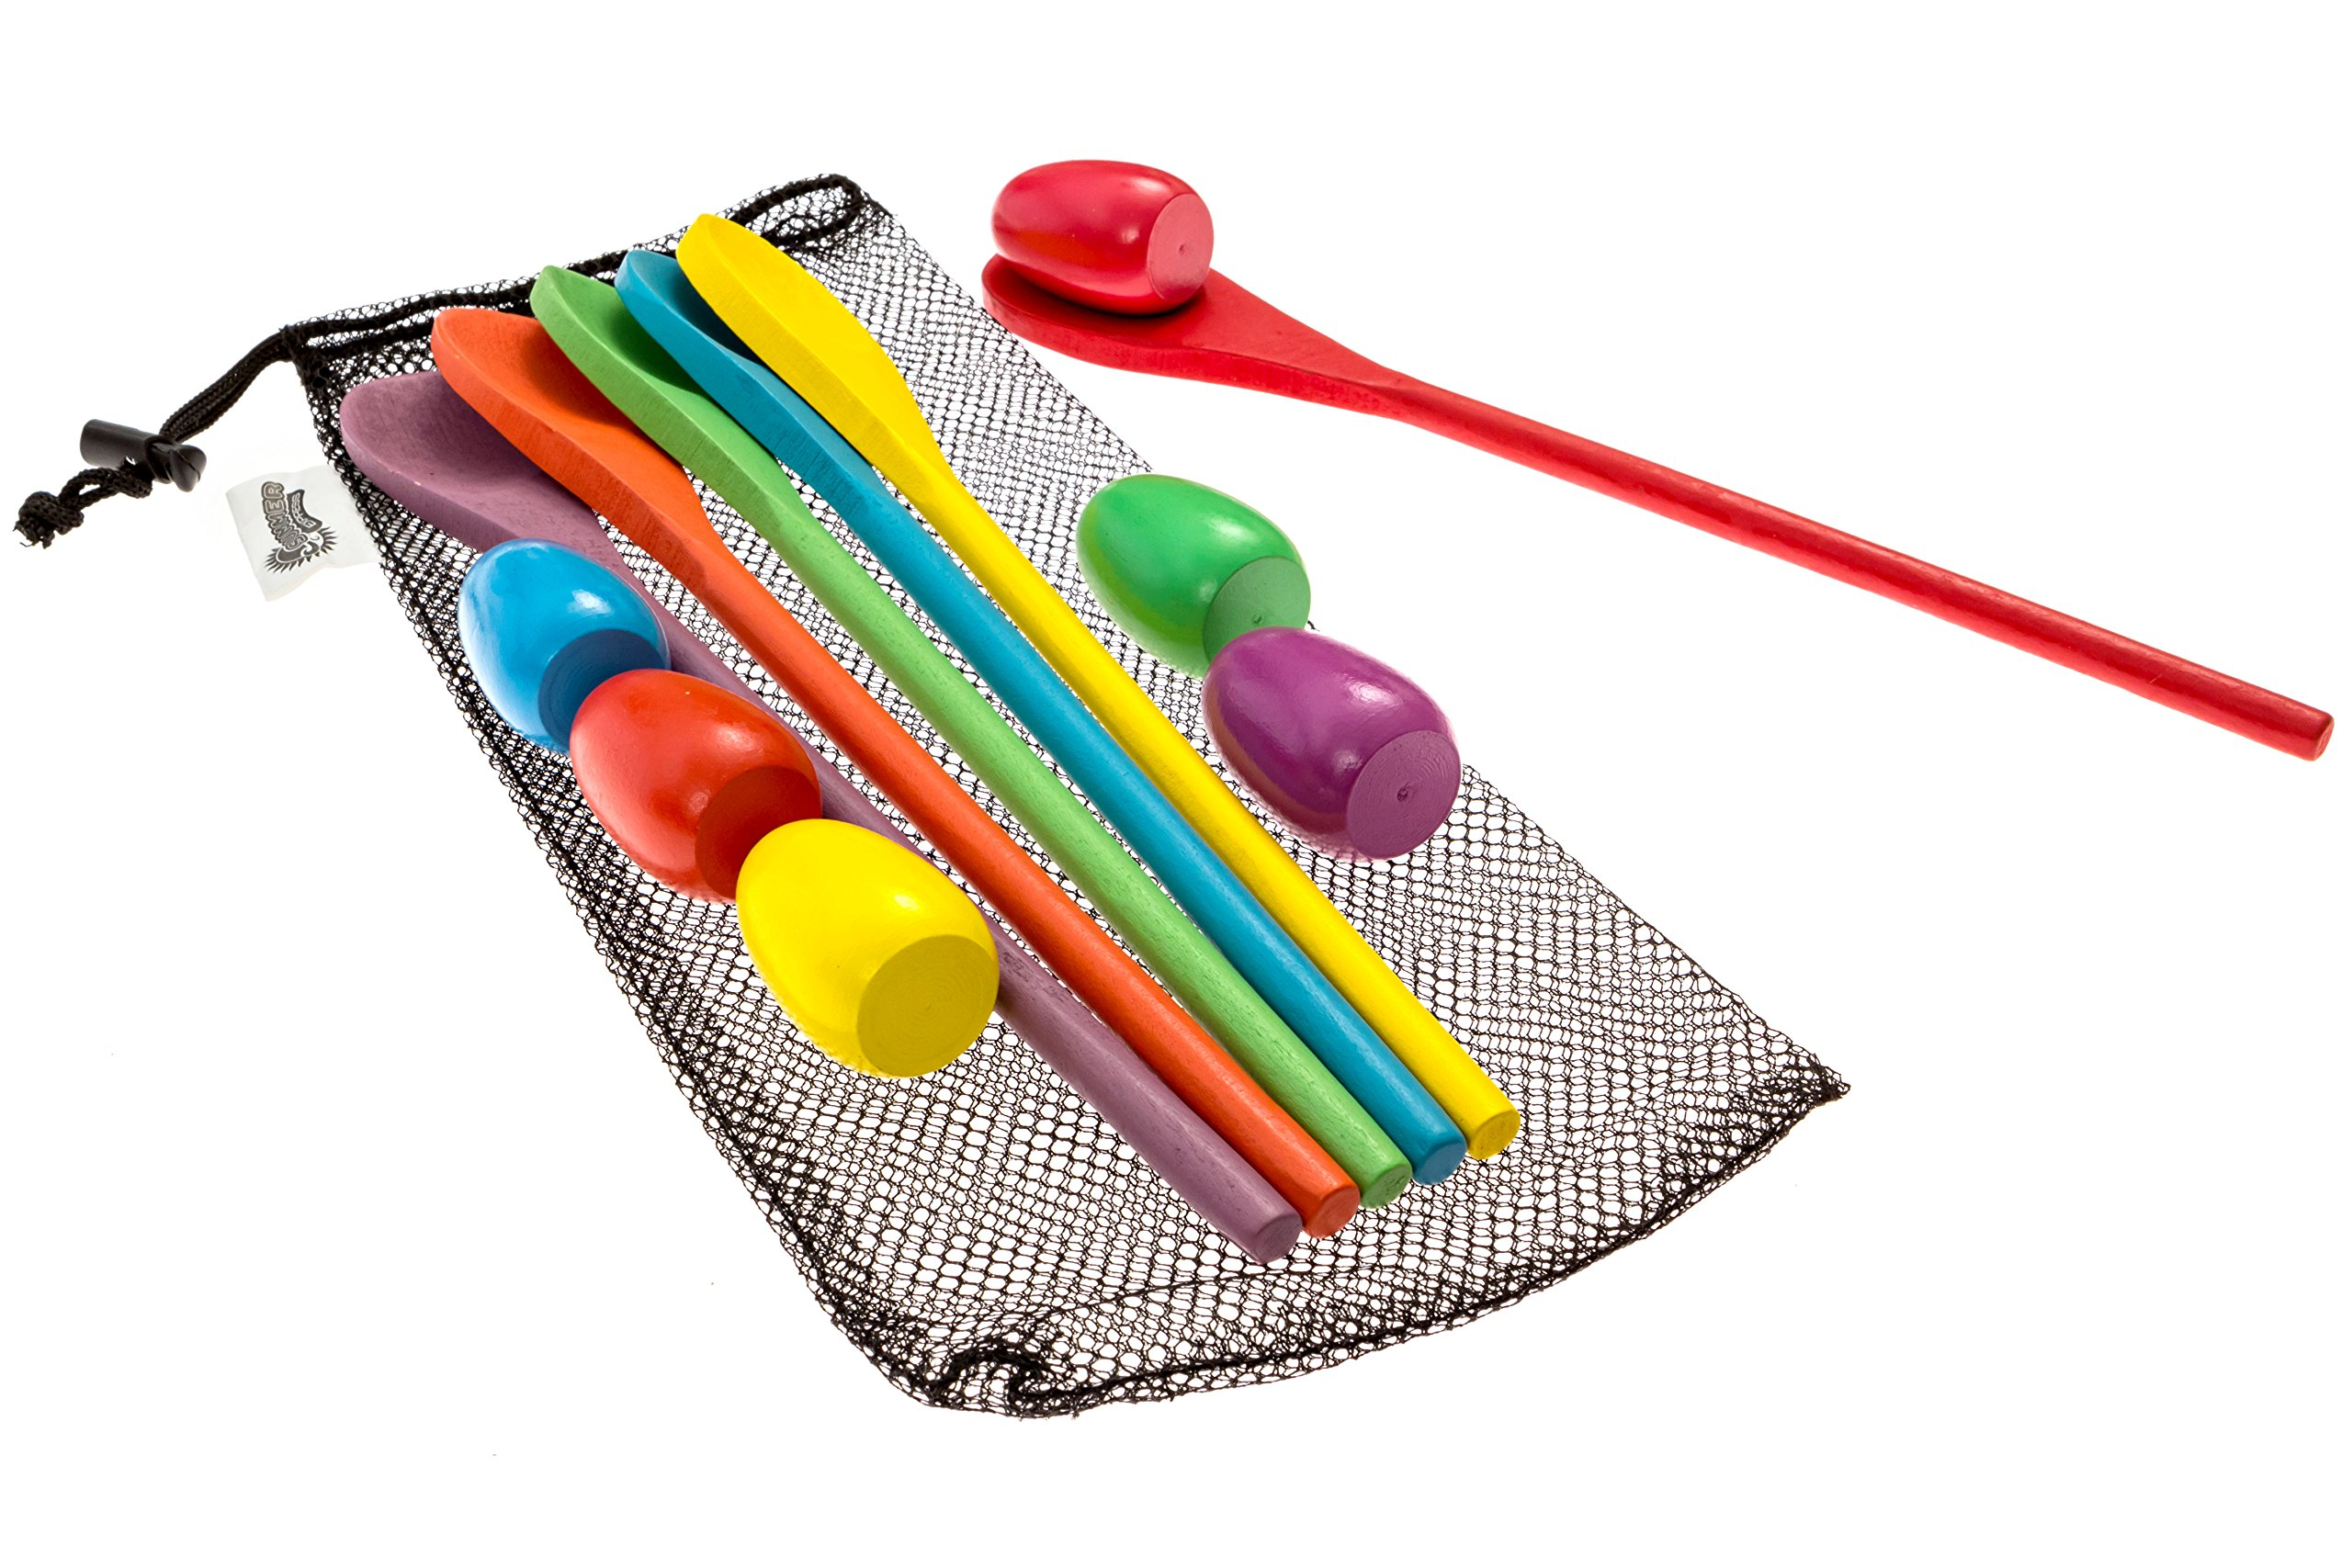 Summer Express Egg and Spoon Relay Race Game - Fun game for Kids Parties, Birthdays, Family Outings - Includes 6 Eggs, 6 Spoons, and Storage Bag - Six Assorted Colors - Egg n Spoon by Summer Express (Image #3)